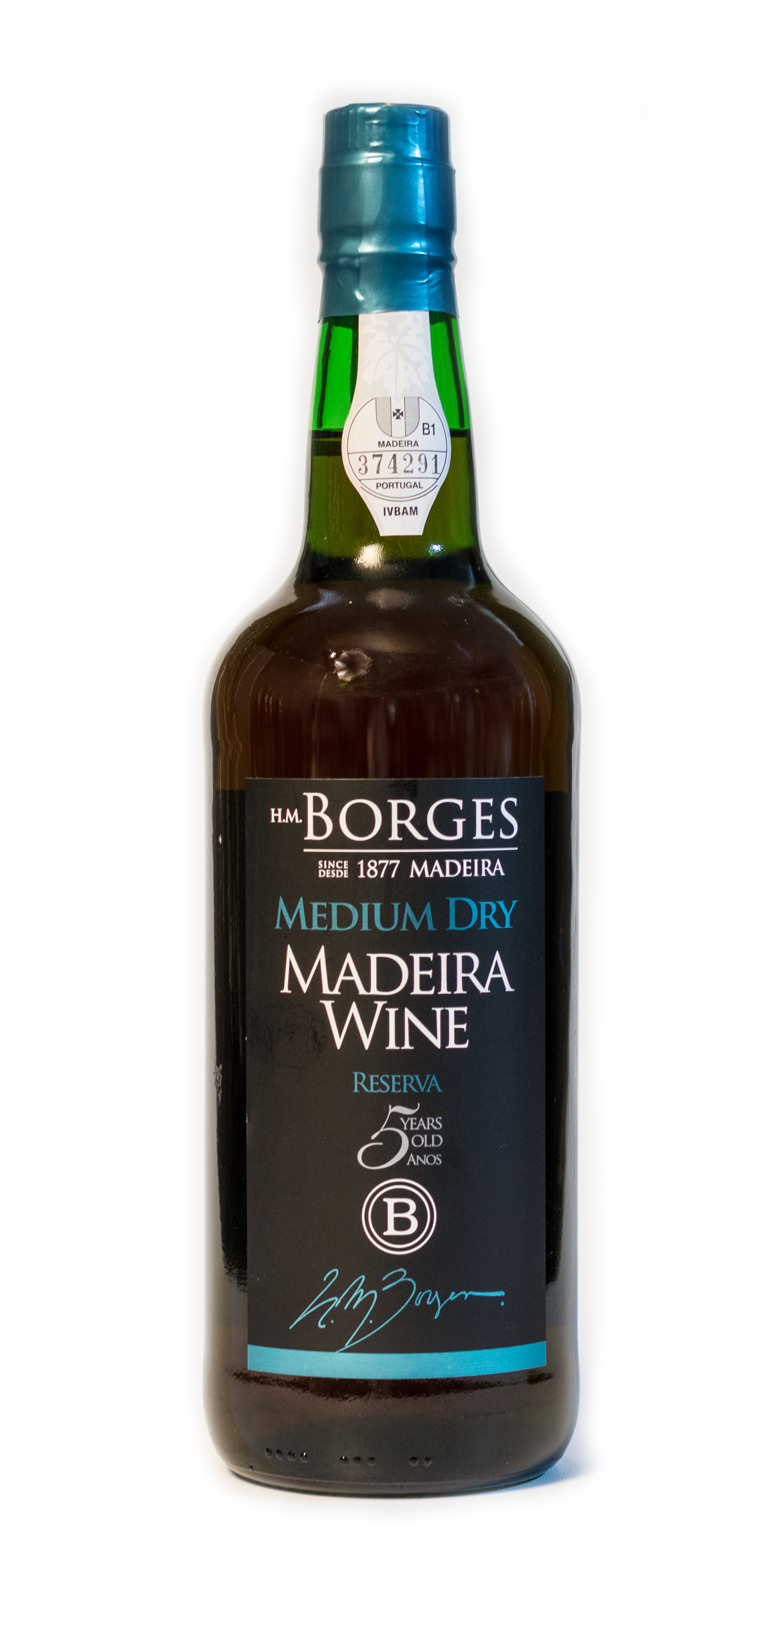 H.M. Borges Medium Dry 5 Years Old